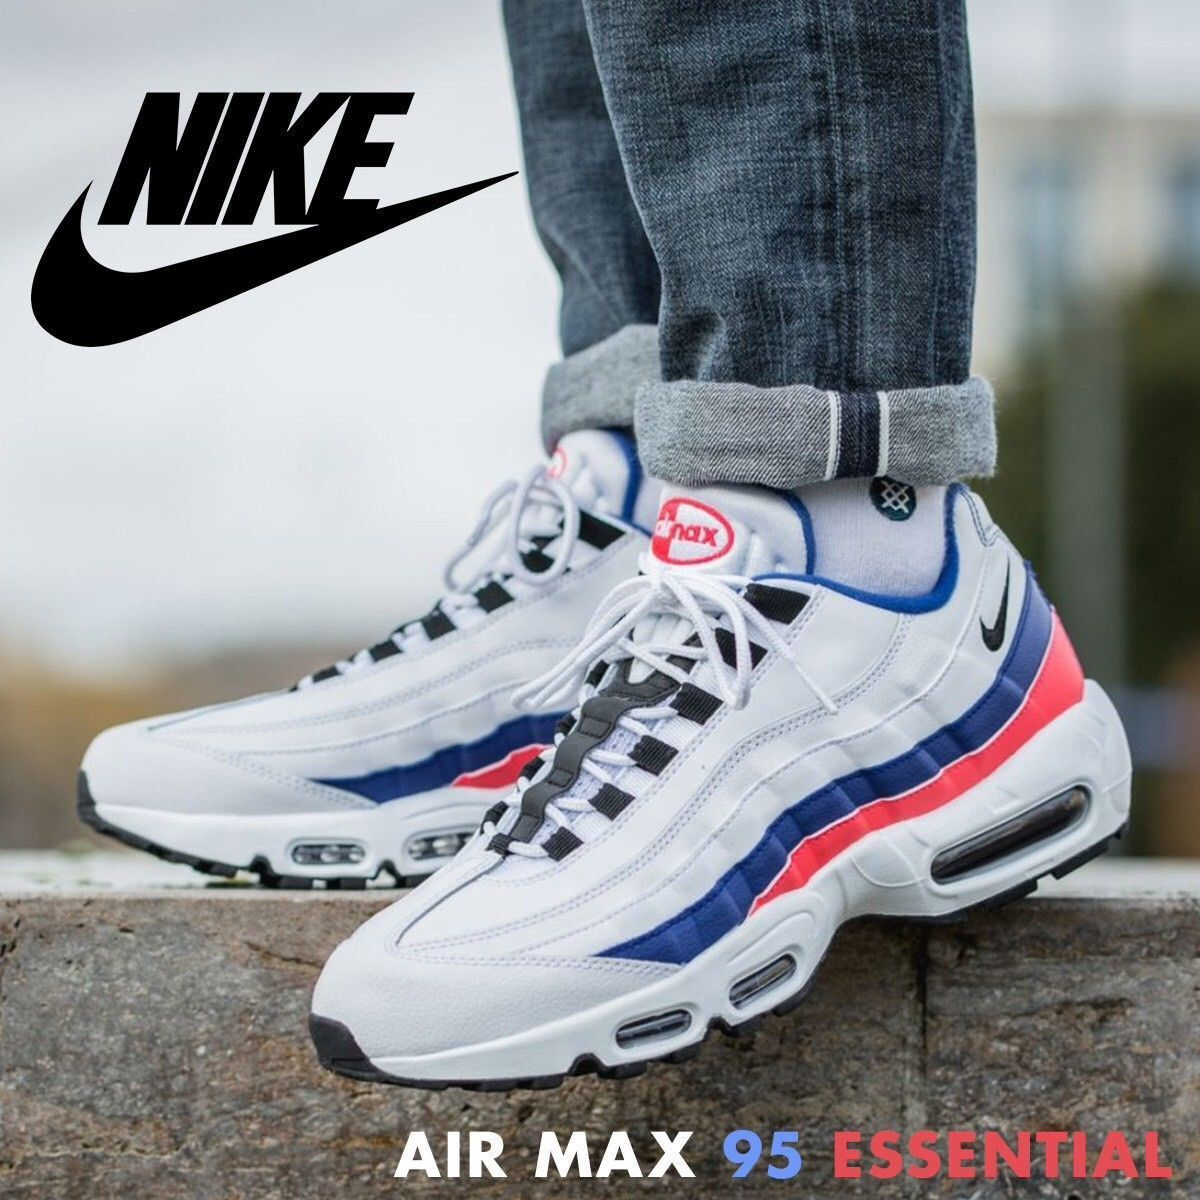 Nike Air Max 95 Essential Men's Ultramarine Solar Red shoes (749766-106) Size 13